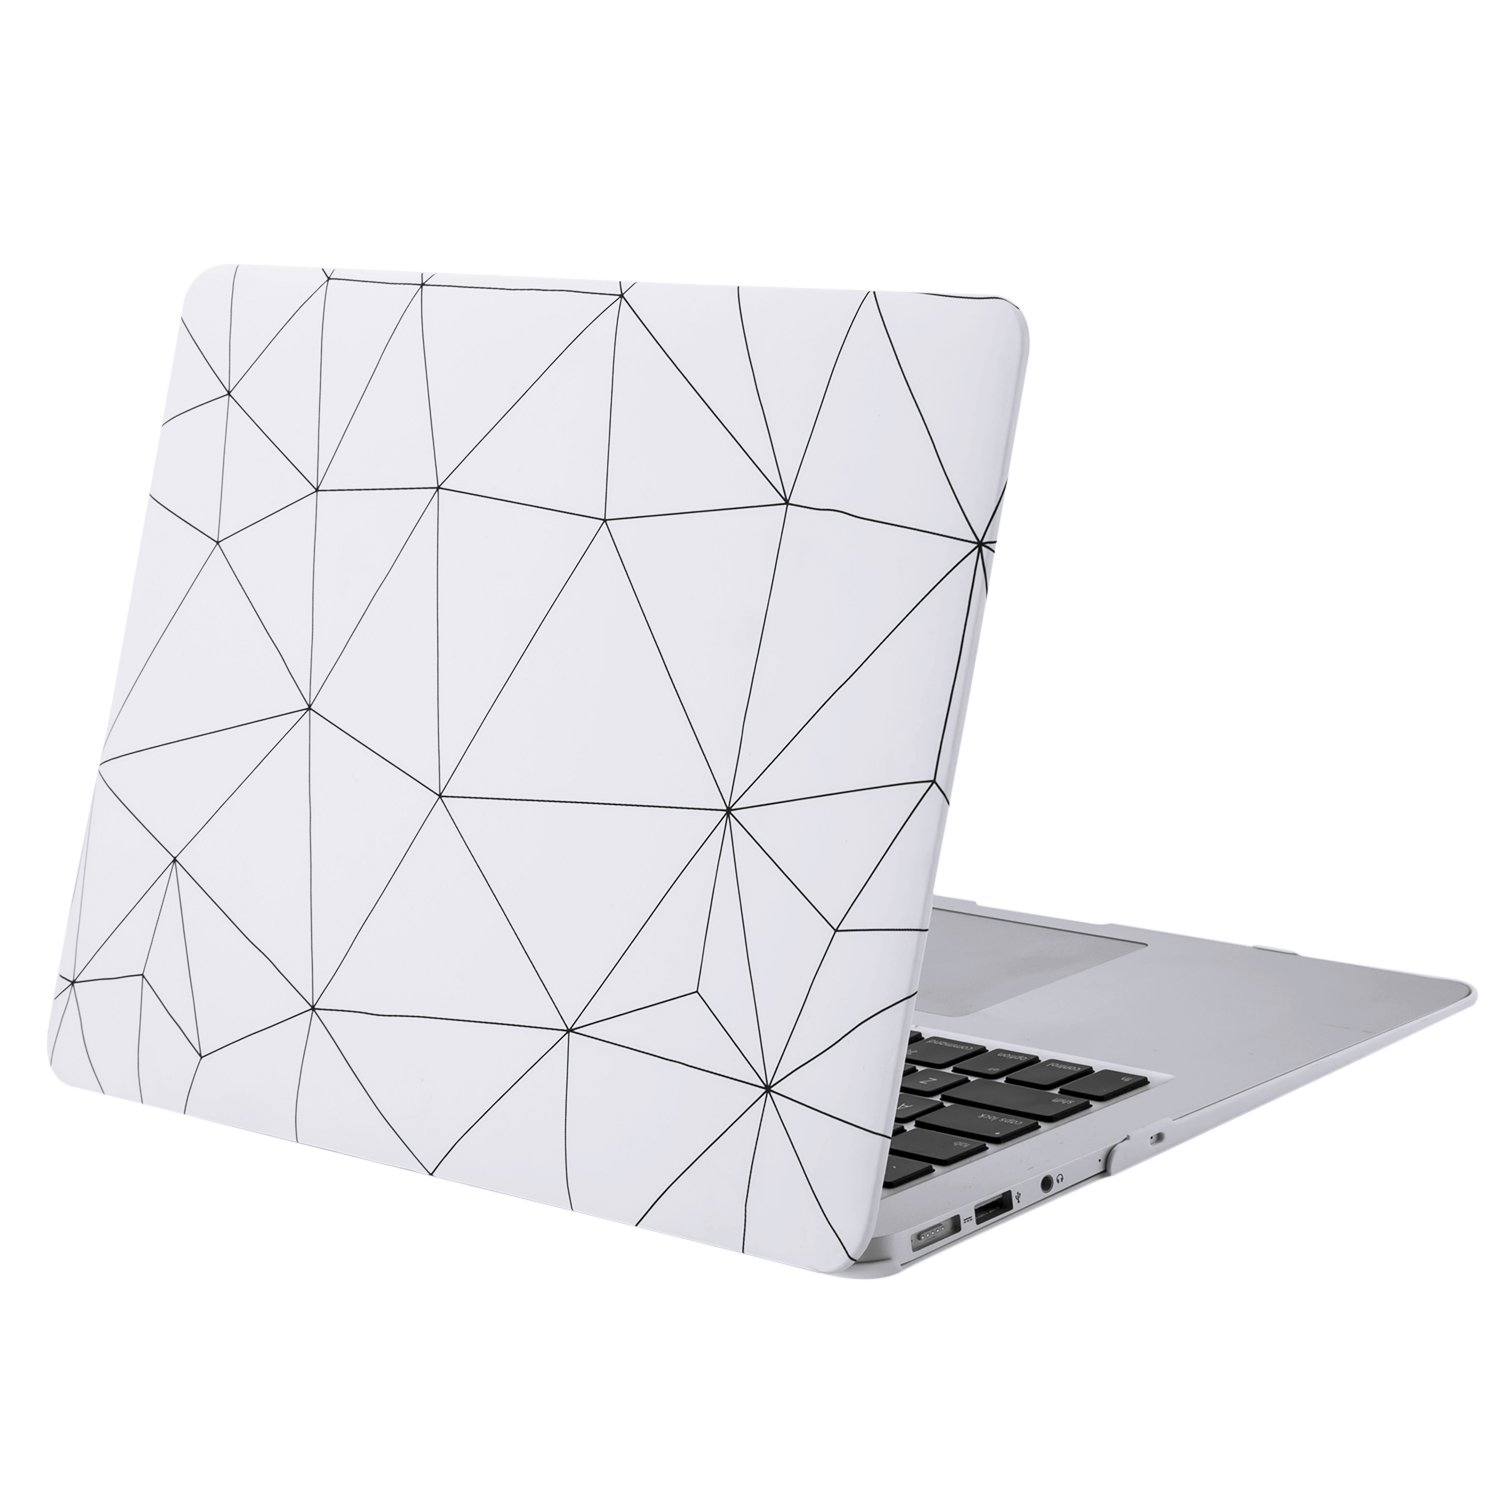 MacBook Case Plastic Hard Shell Cover for 13 Inch Apple MacBook Pro A1706/A1708 (Office Style) by KAOPU (Image #2)